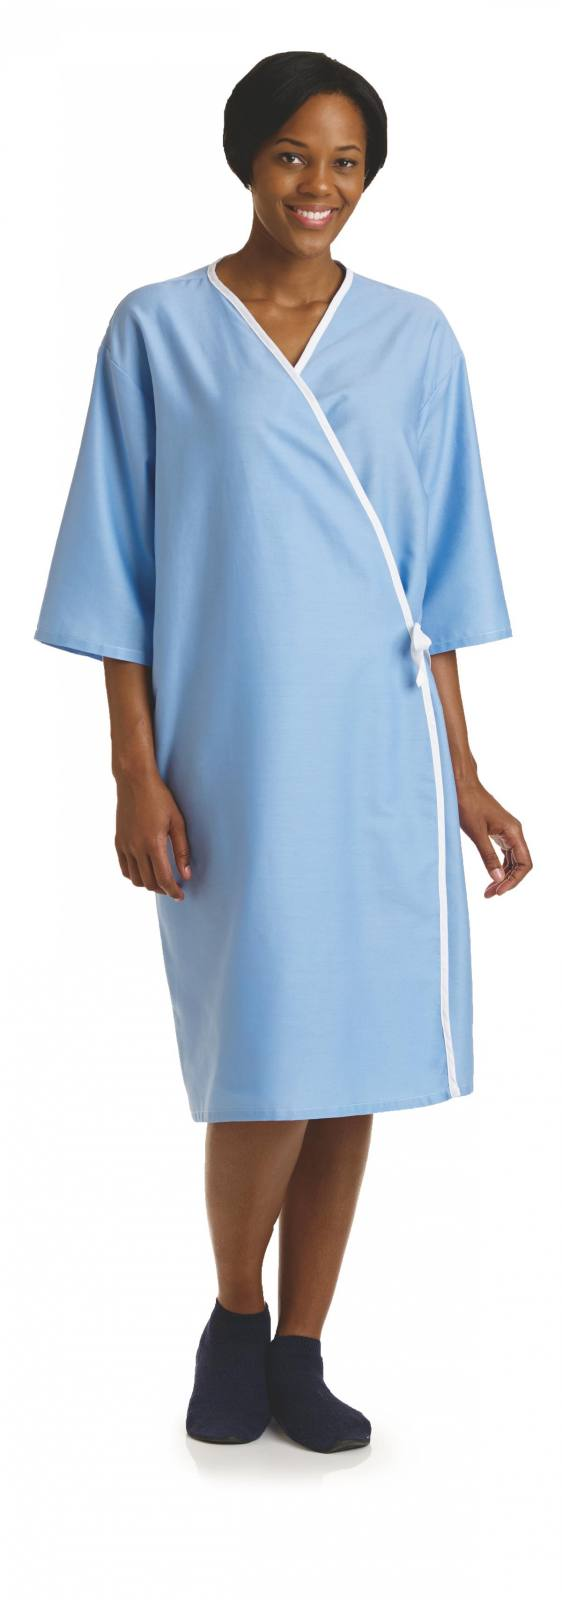 FRONT-OPENING EXAM GOWN for sale | Medical West - Clayton (800)-489-1888